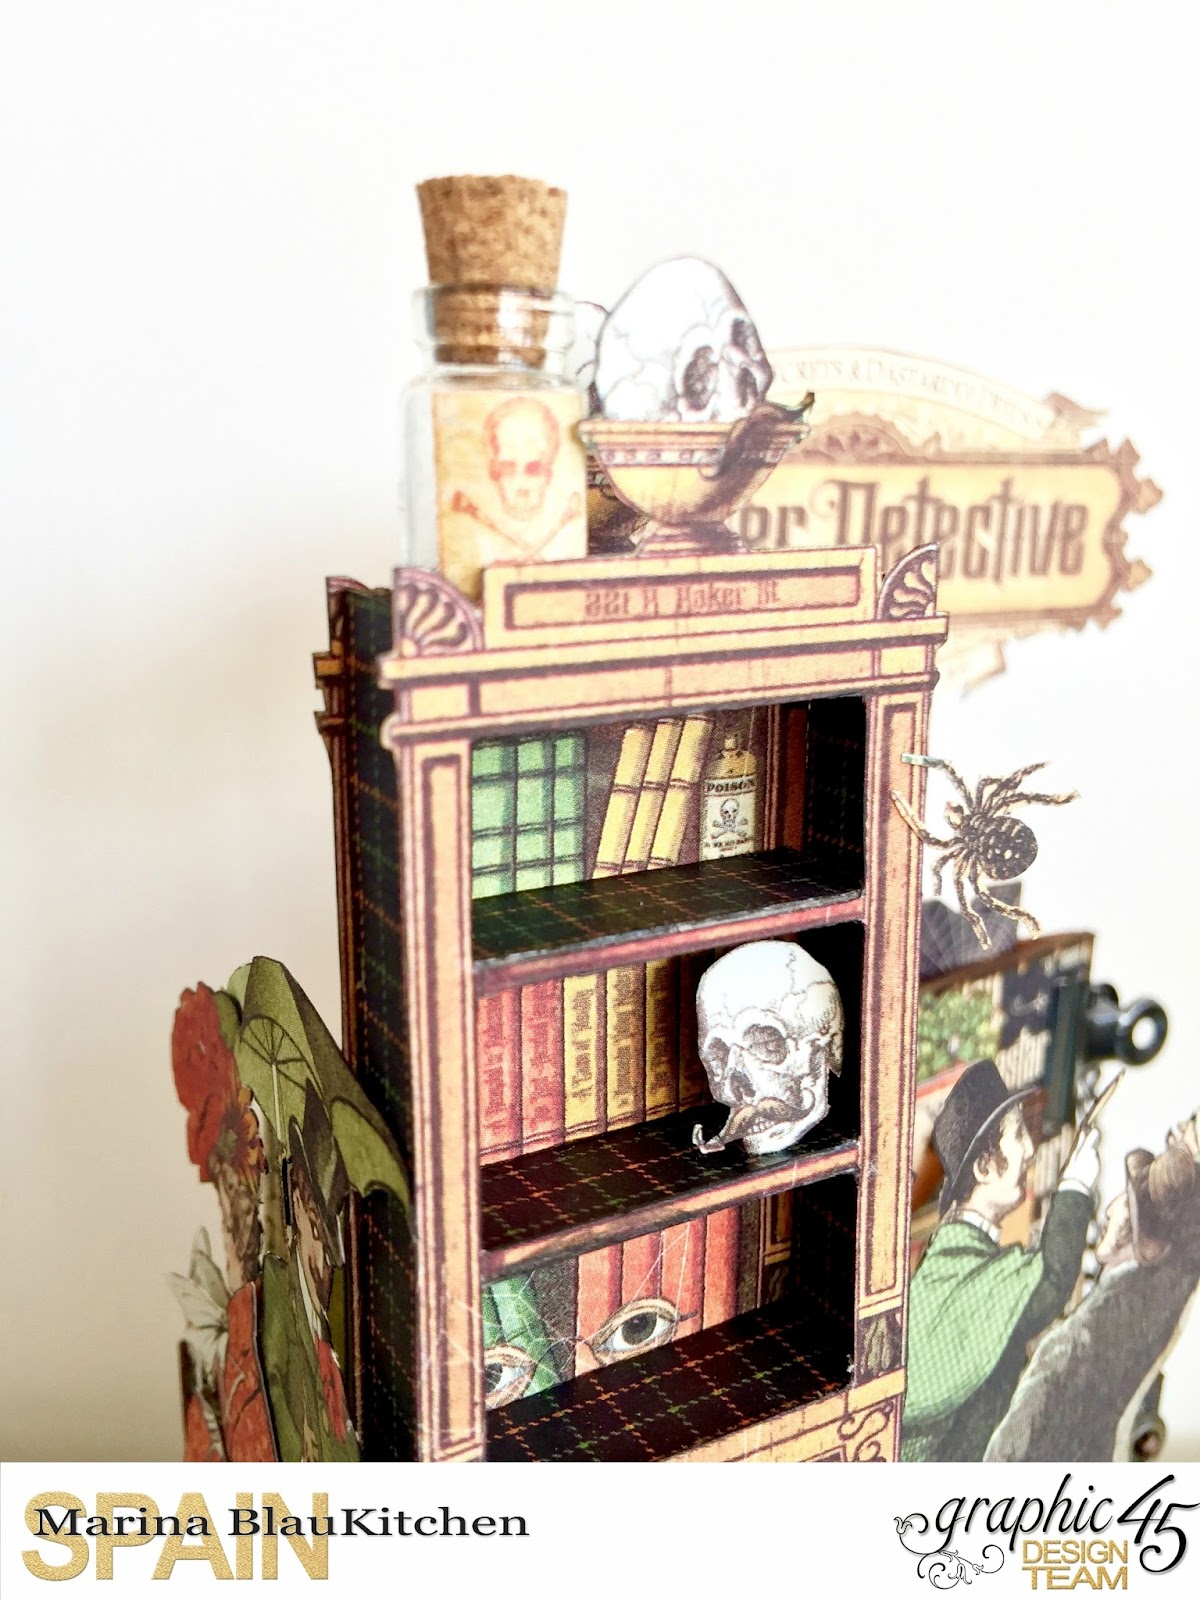 Stand and Mini Album Master Detective by Marina Blaukitchen Product by Graphic 45 photo 5.jpg